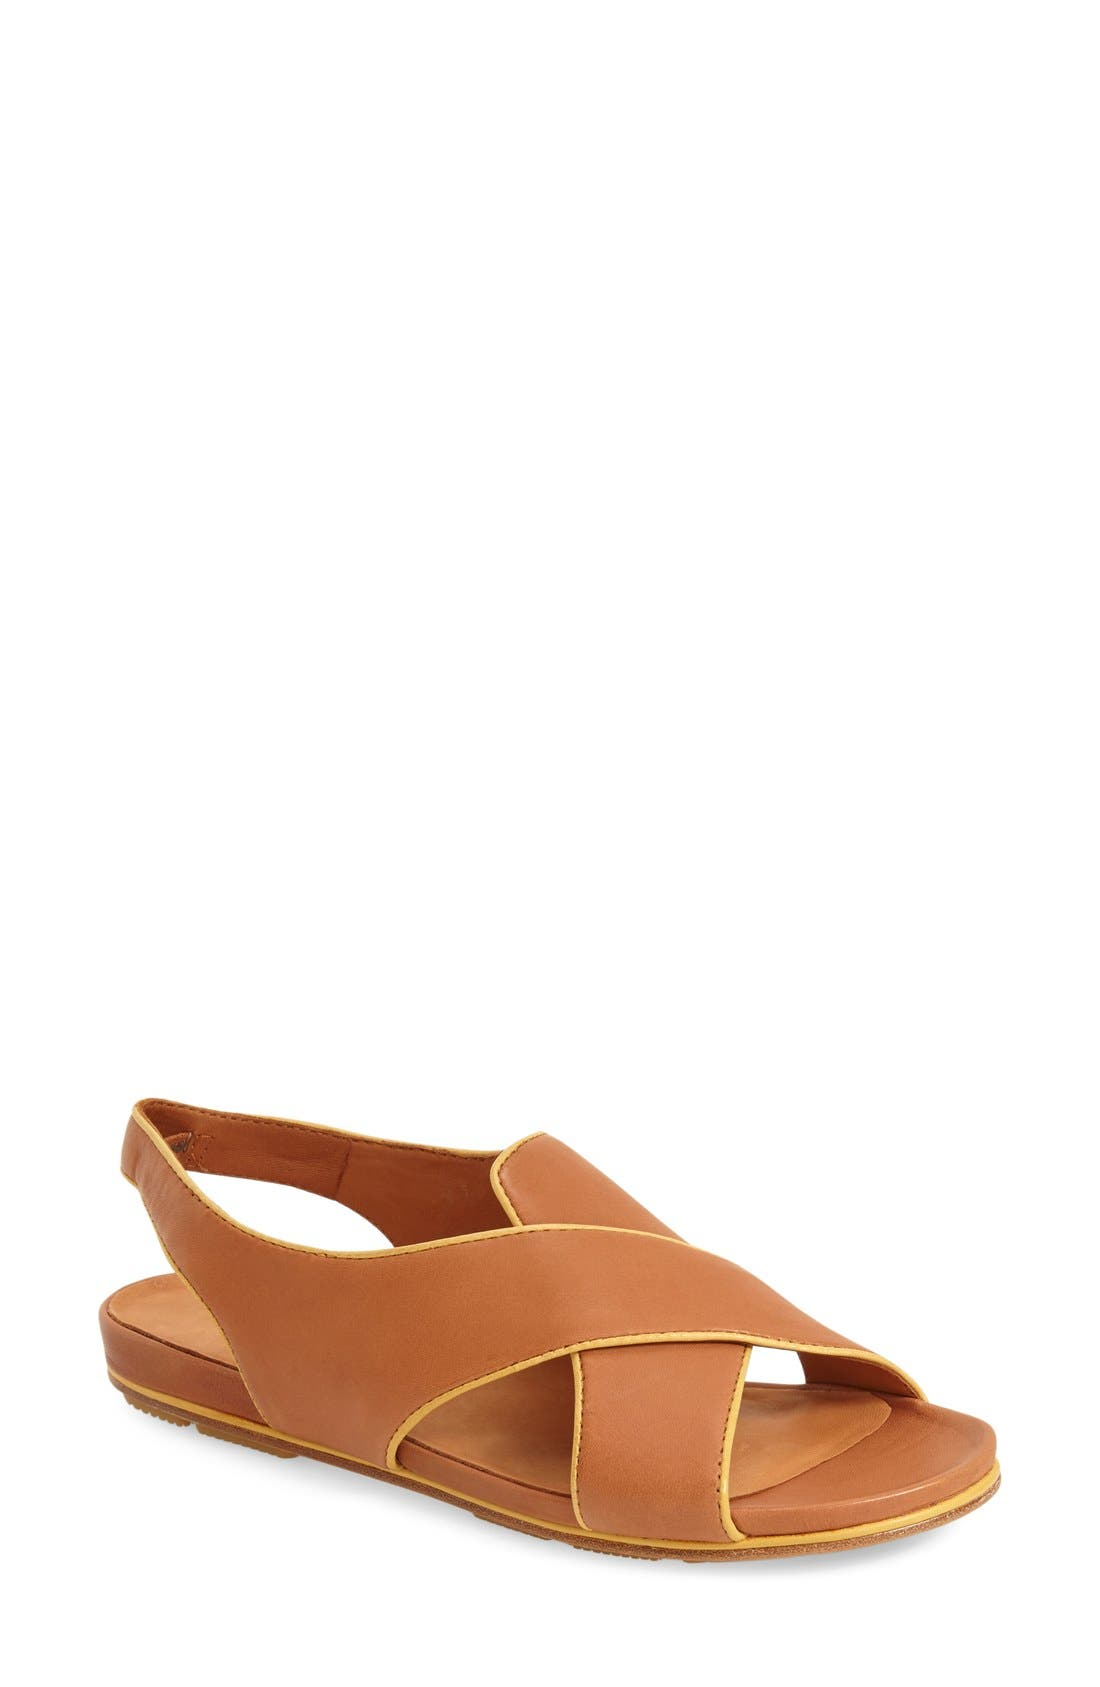 'Dallon' Crisscross Flat Sandal,                         Main,                         color, 200